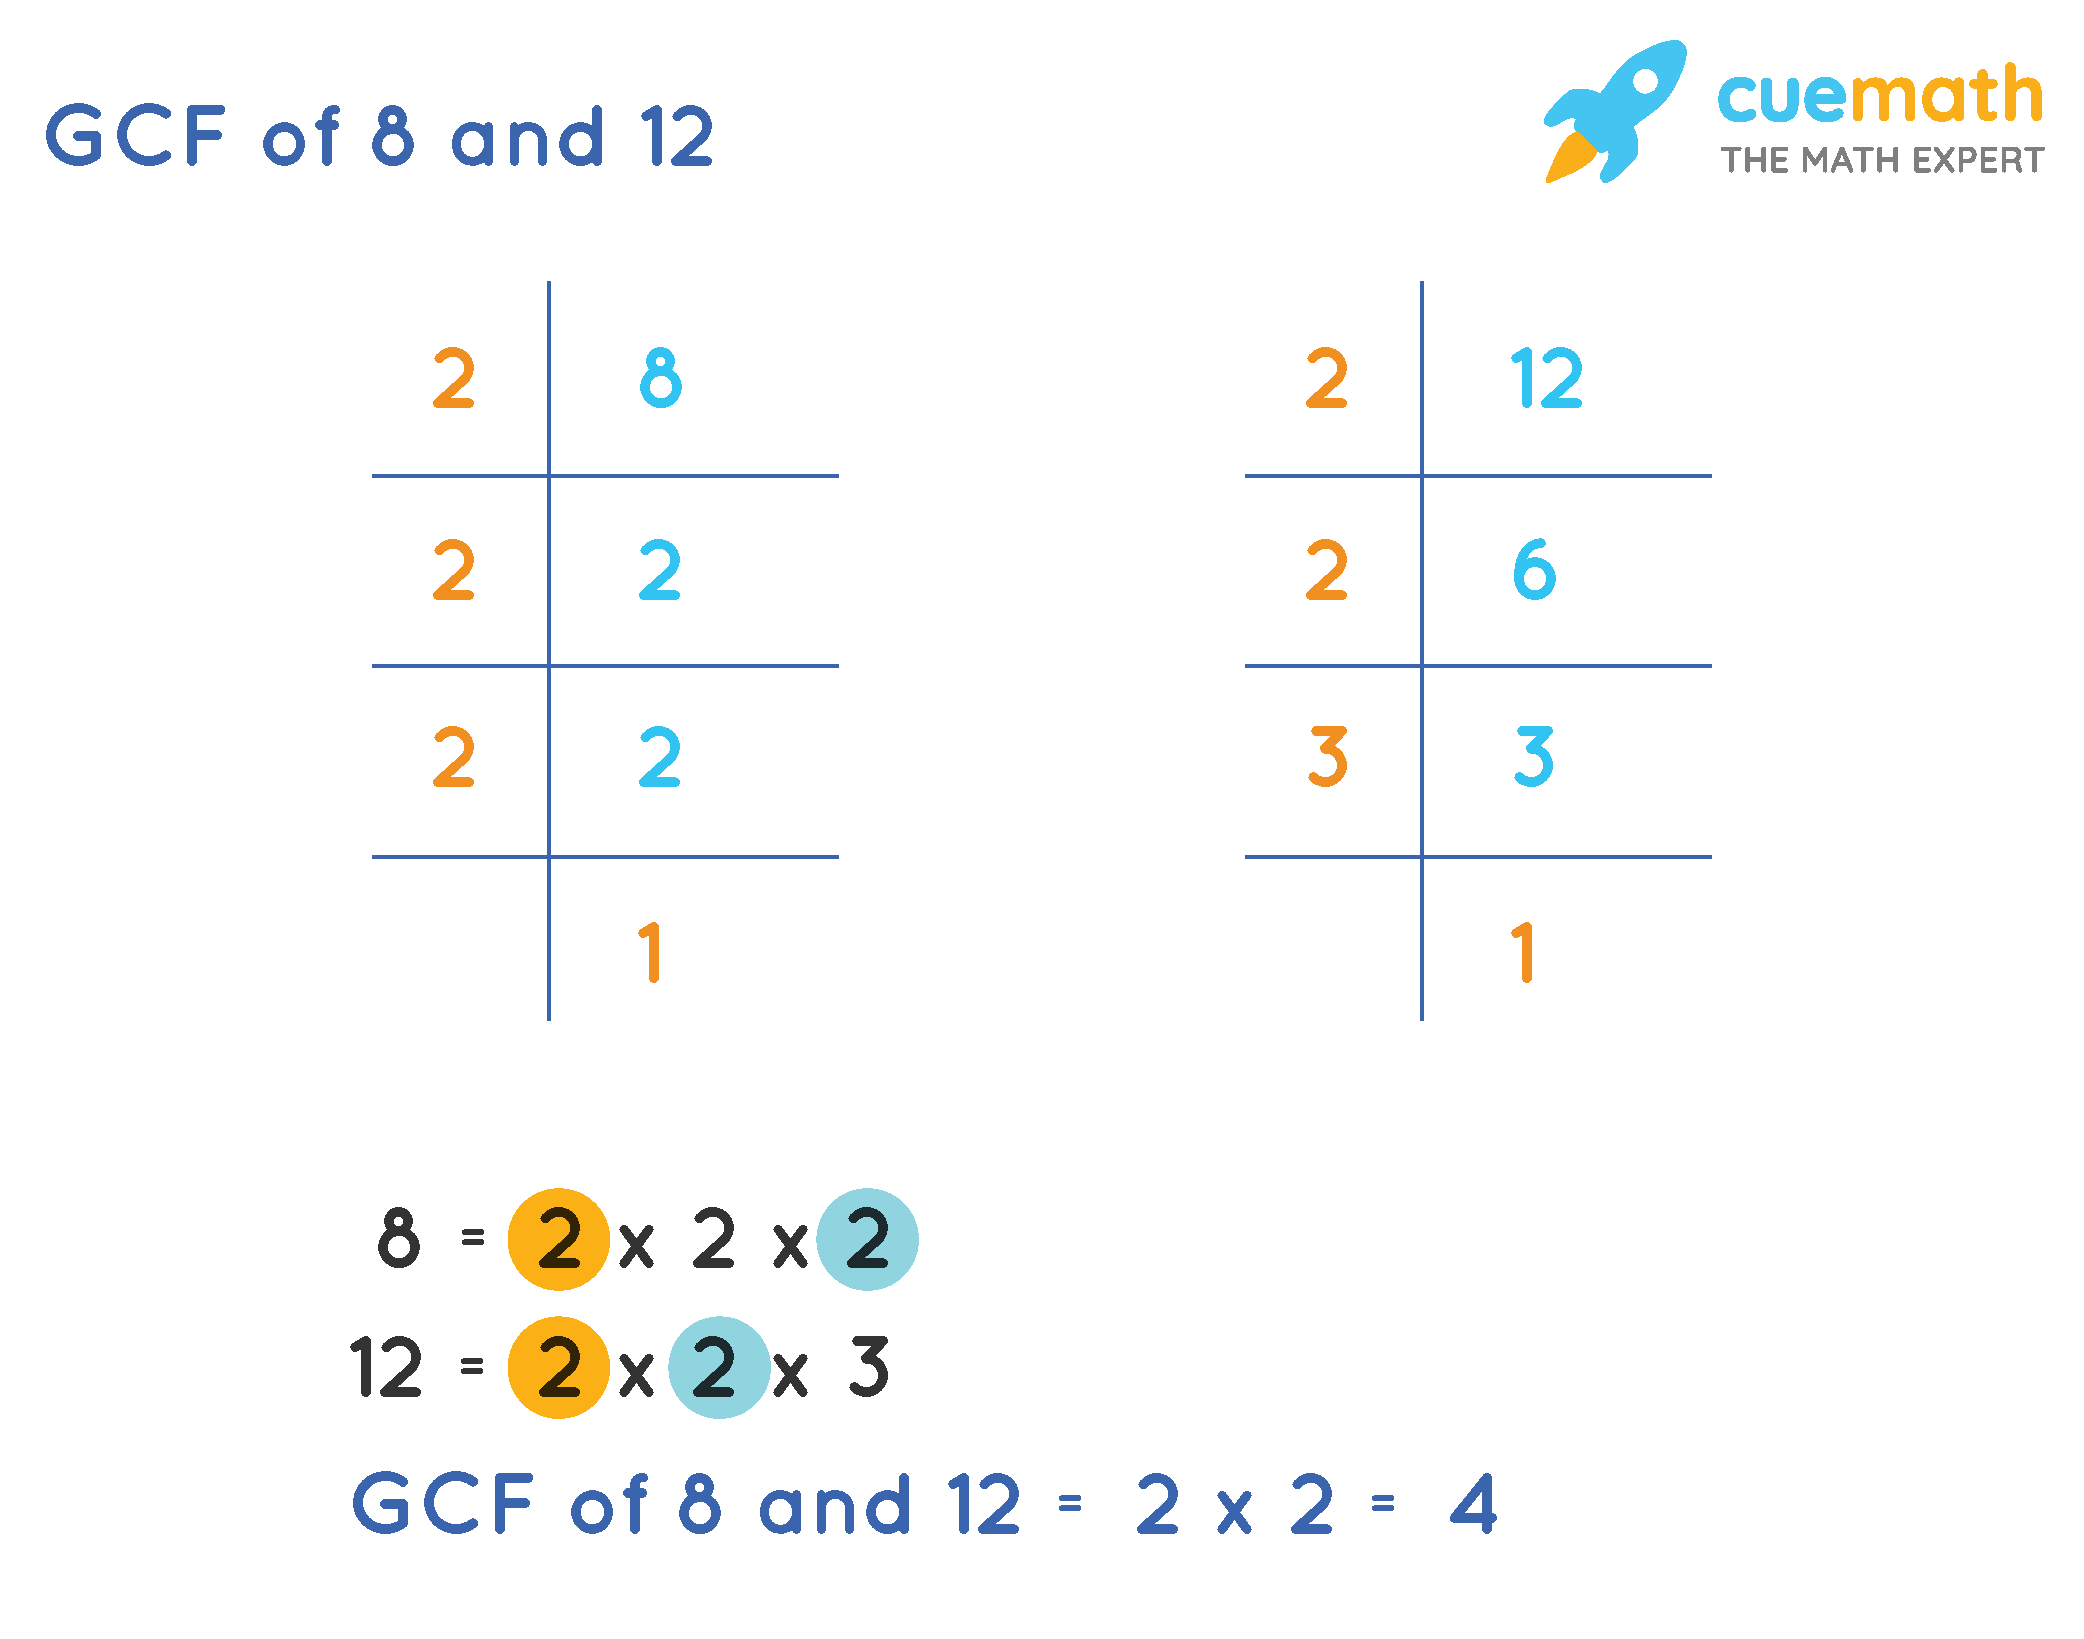 GCF of 8 and 12 by Prime Factorization